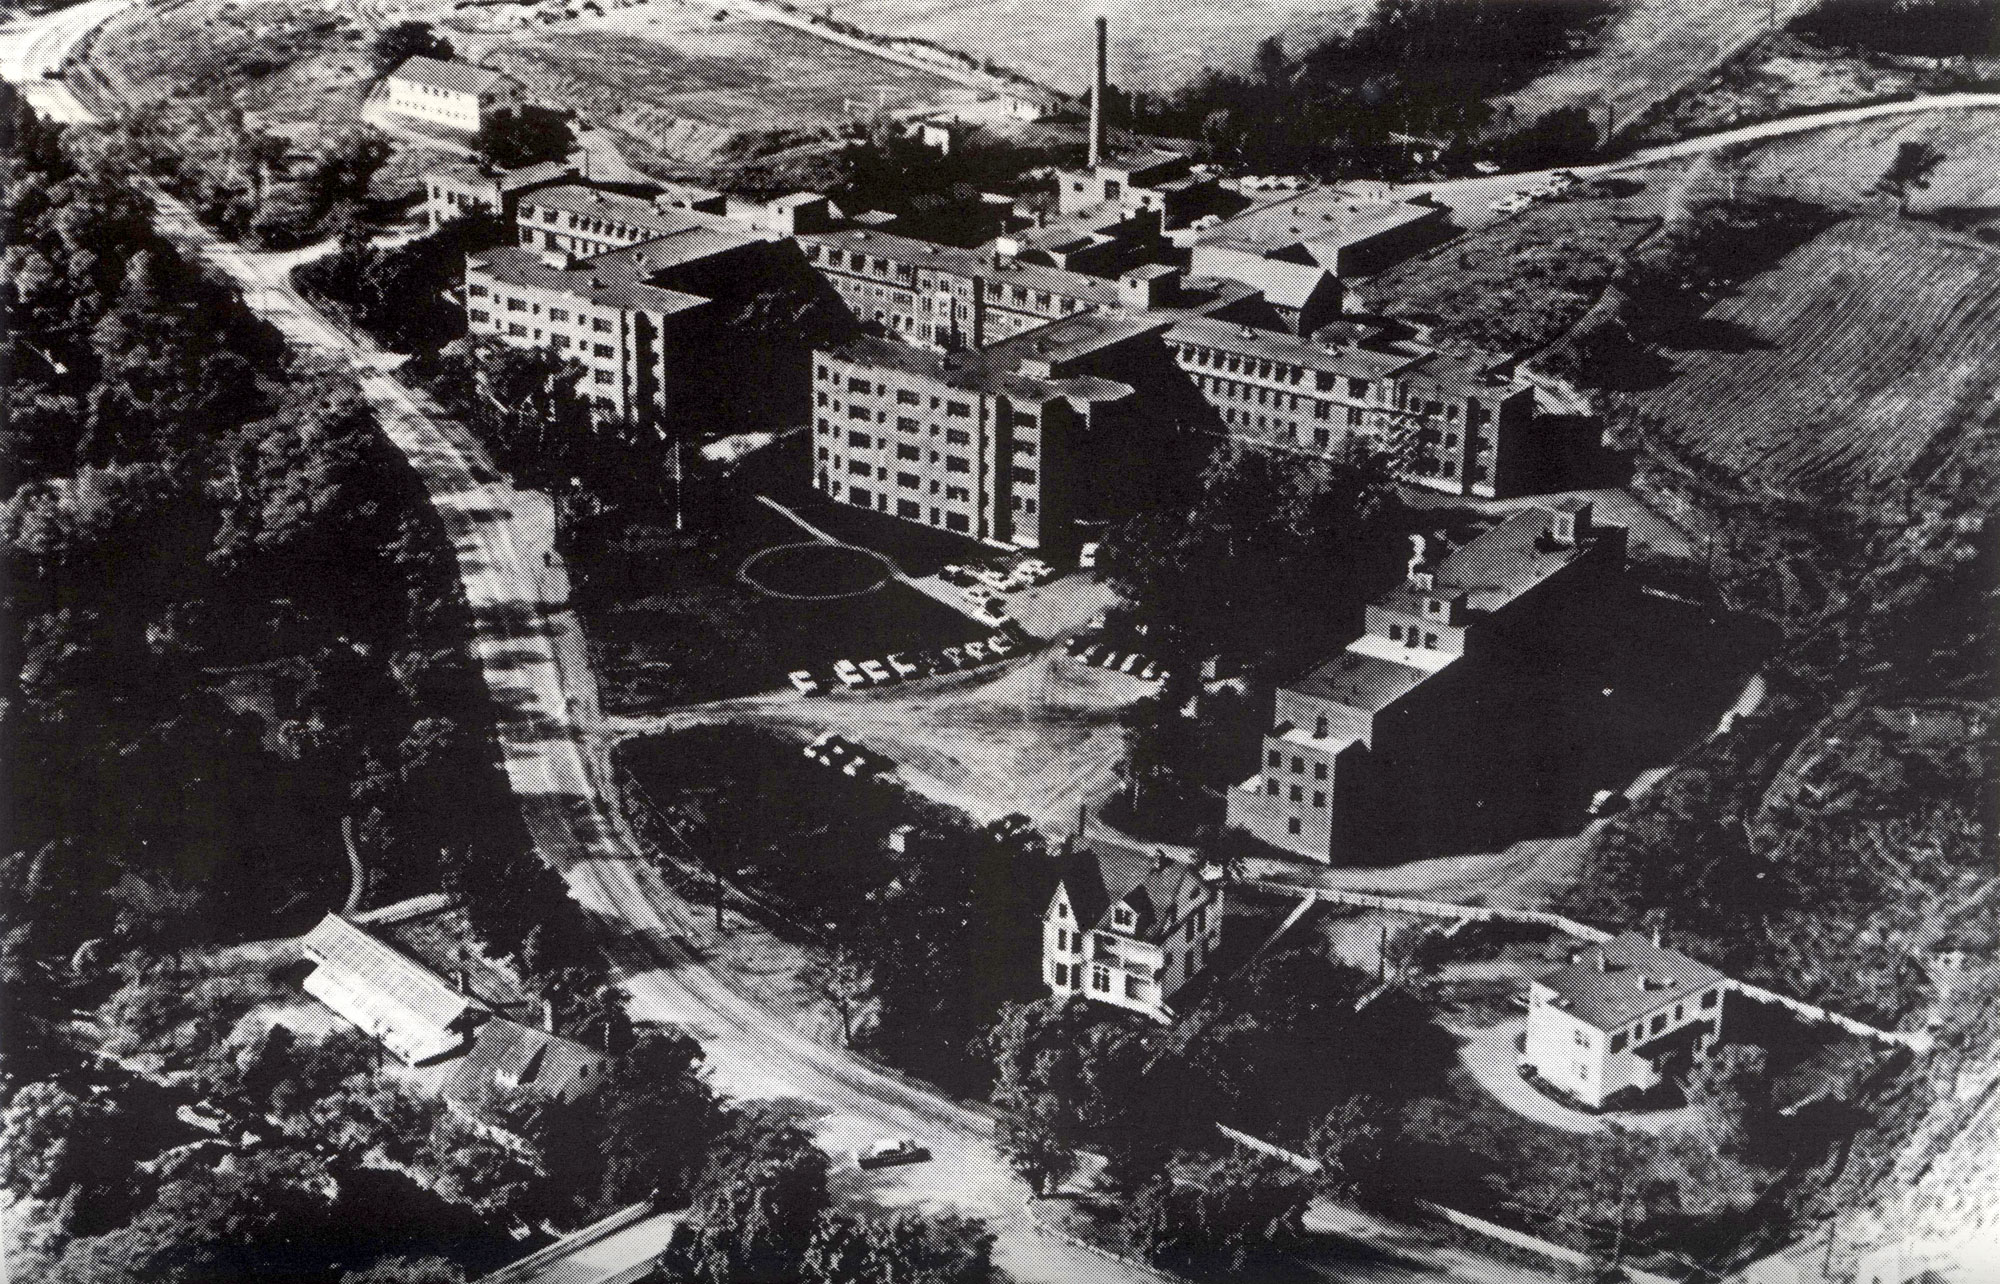 aerial black and white photograph of institutional complex with road, large main building and smaller surrounding buildings